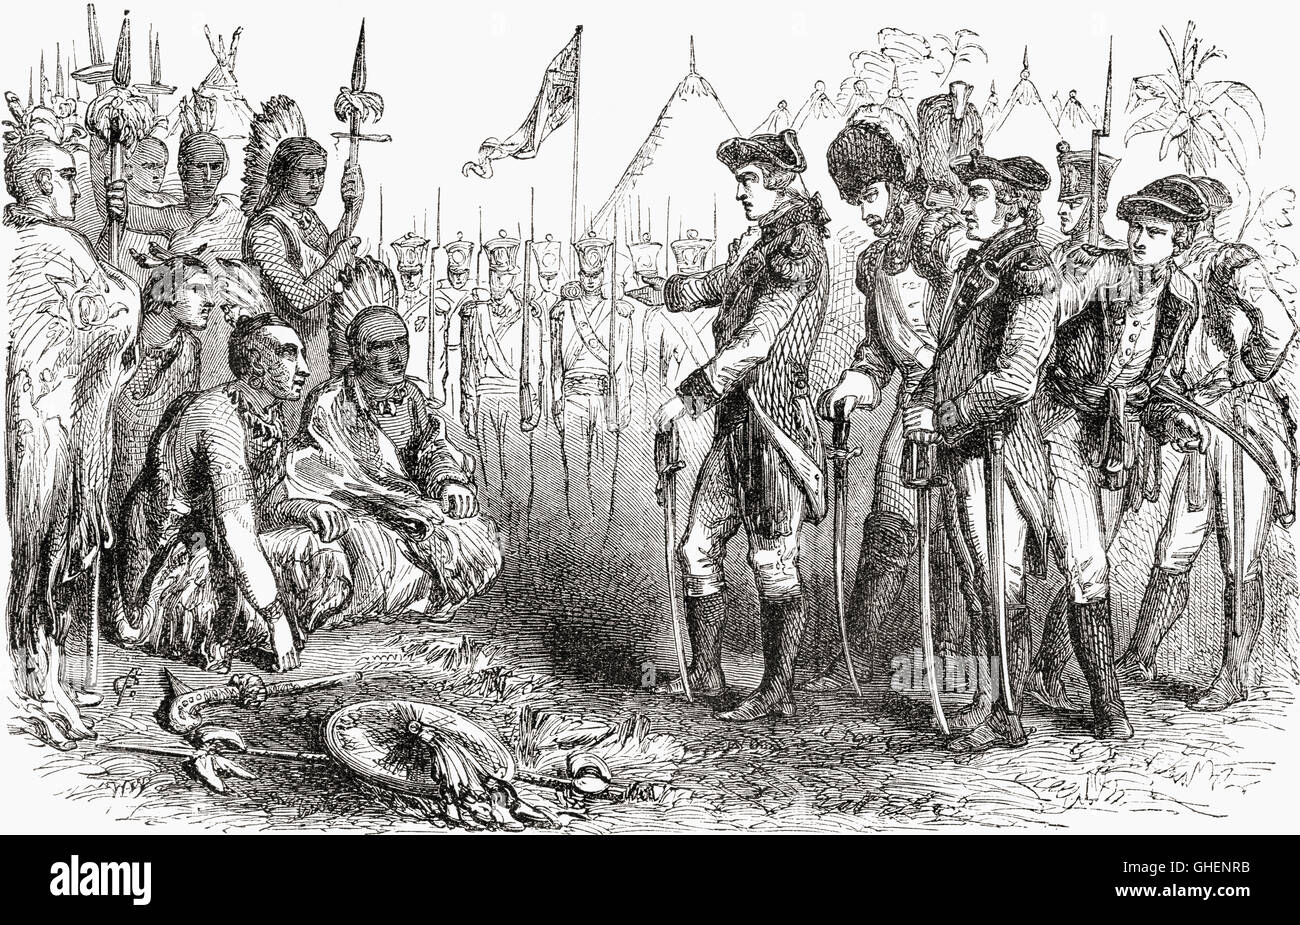 General Burgoyne recruiting the Indians as scouts prior to the Saratoga campaign in 1777.  General John Burgoyne, - Stock Image